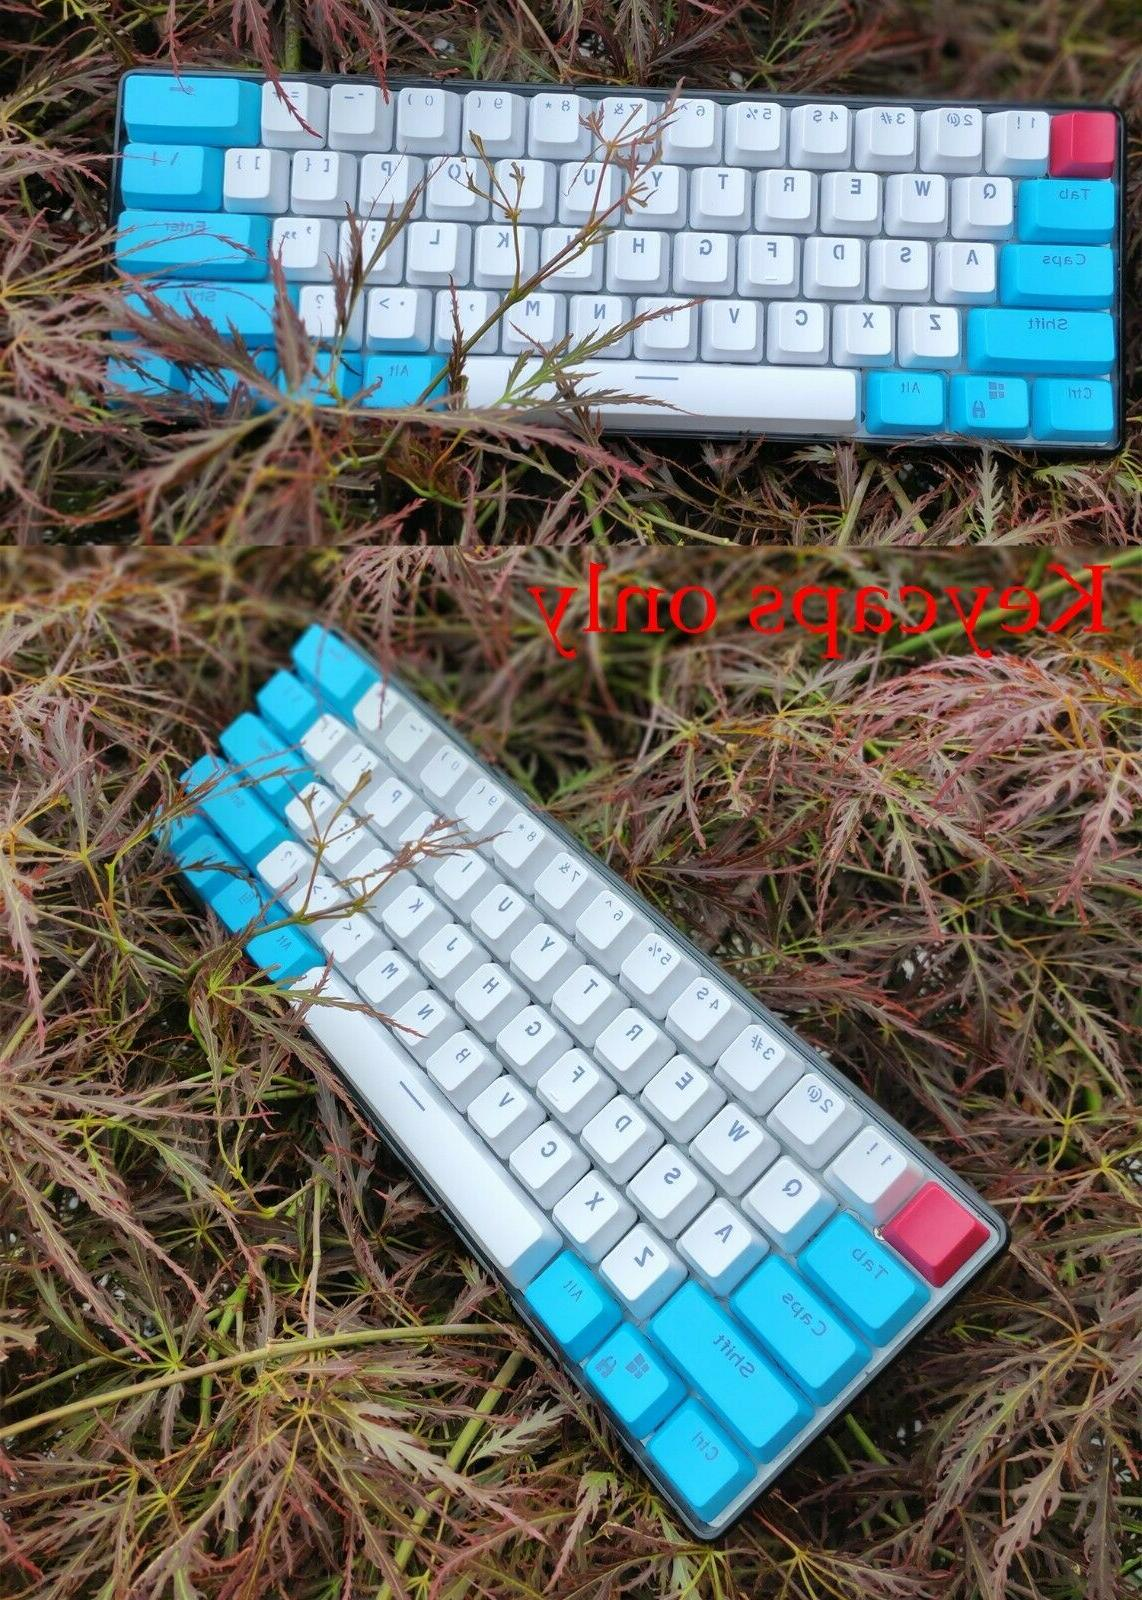 61 Key PBT Thick 60% Keycaps ANSI Layout for Mechanical Keyb